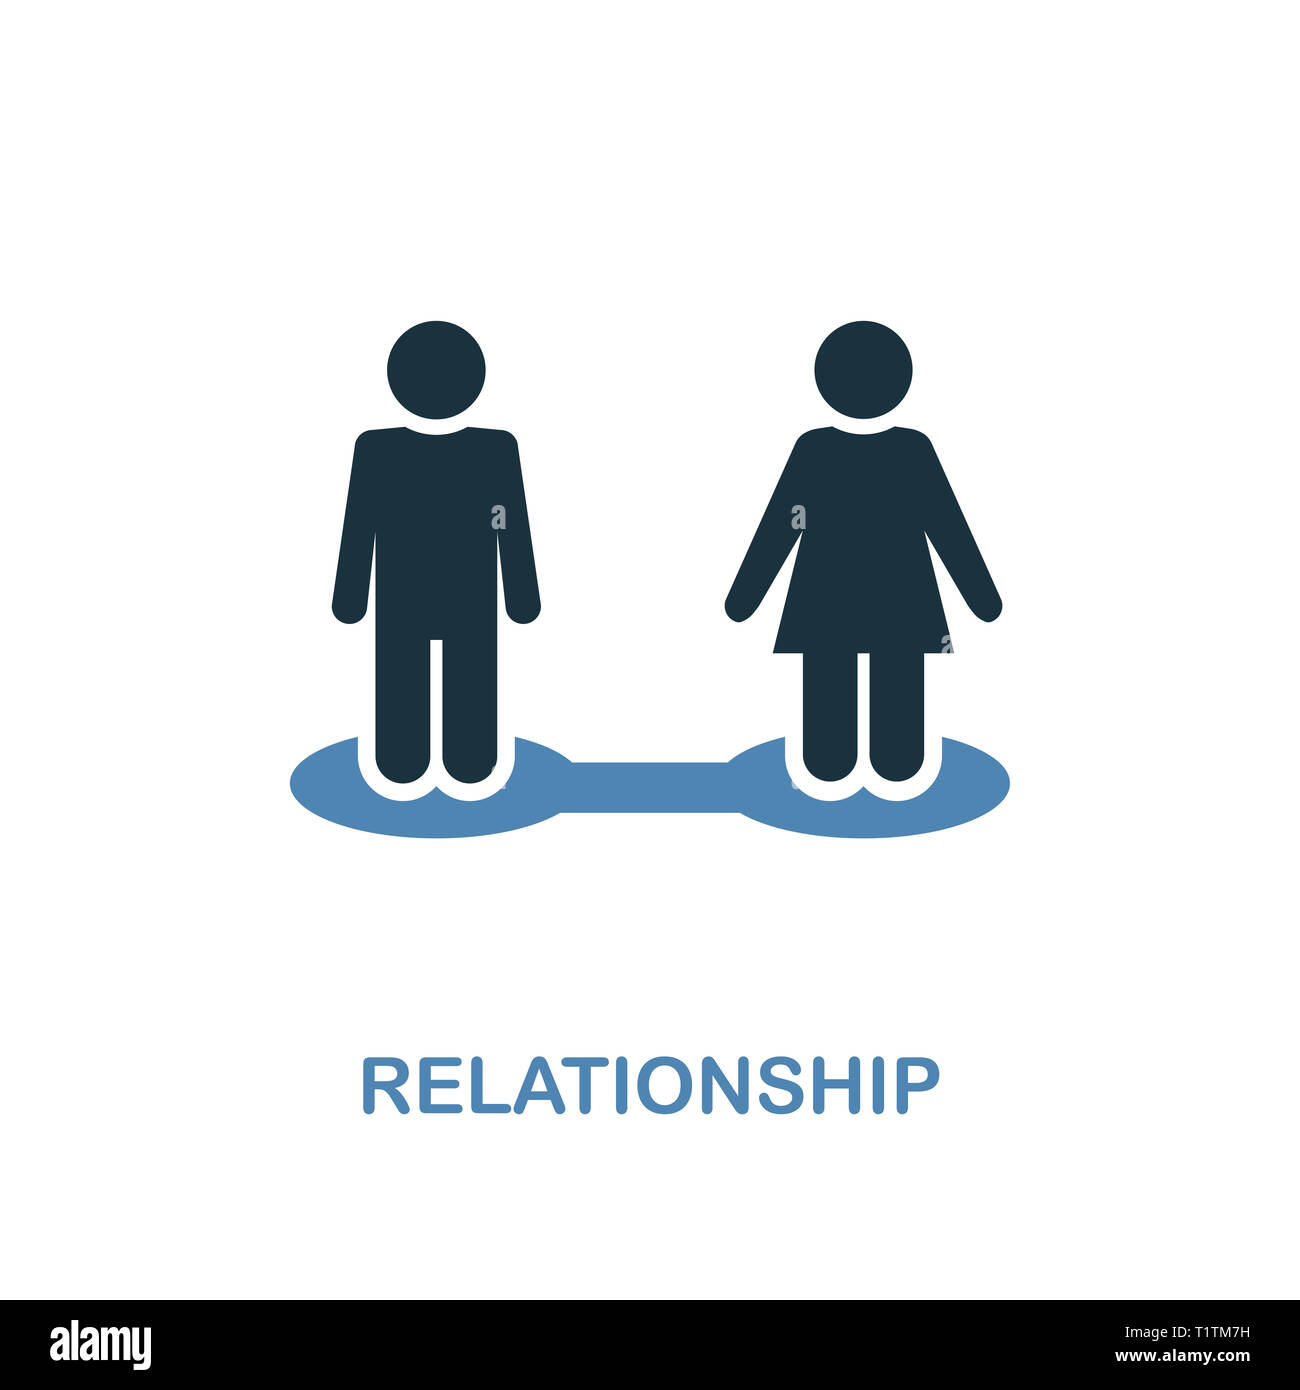 Relationship creative icon. Simple illustration. Relationship icon from human resources collection. Two colors element for web, apps, software, print. - Stock Image